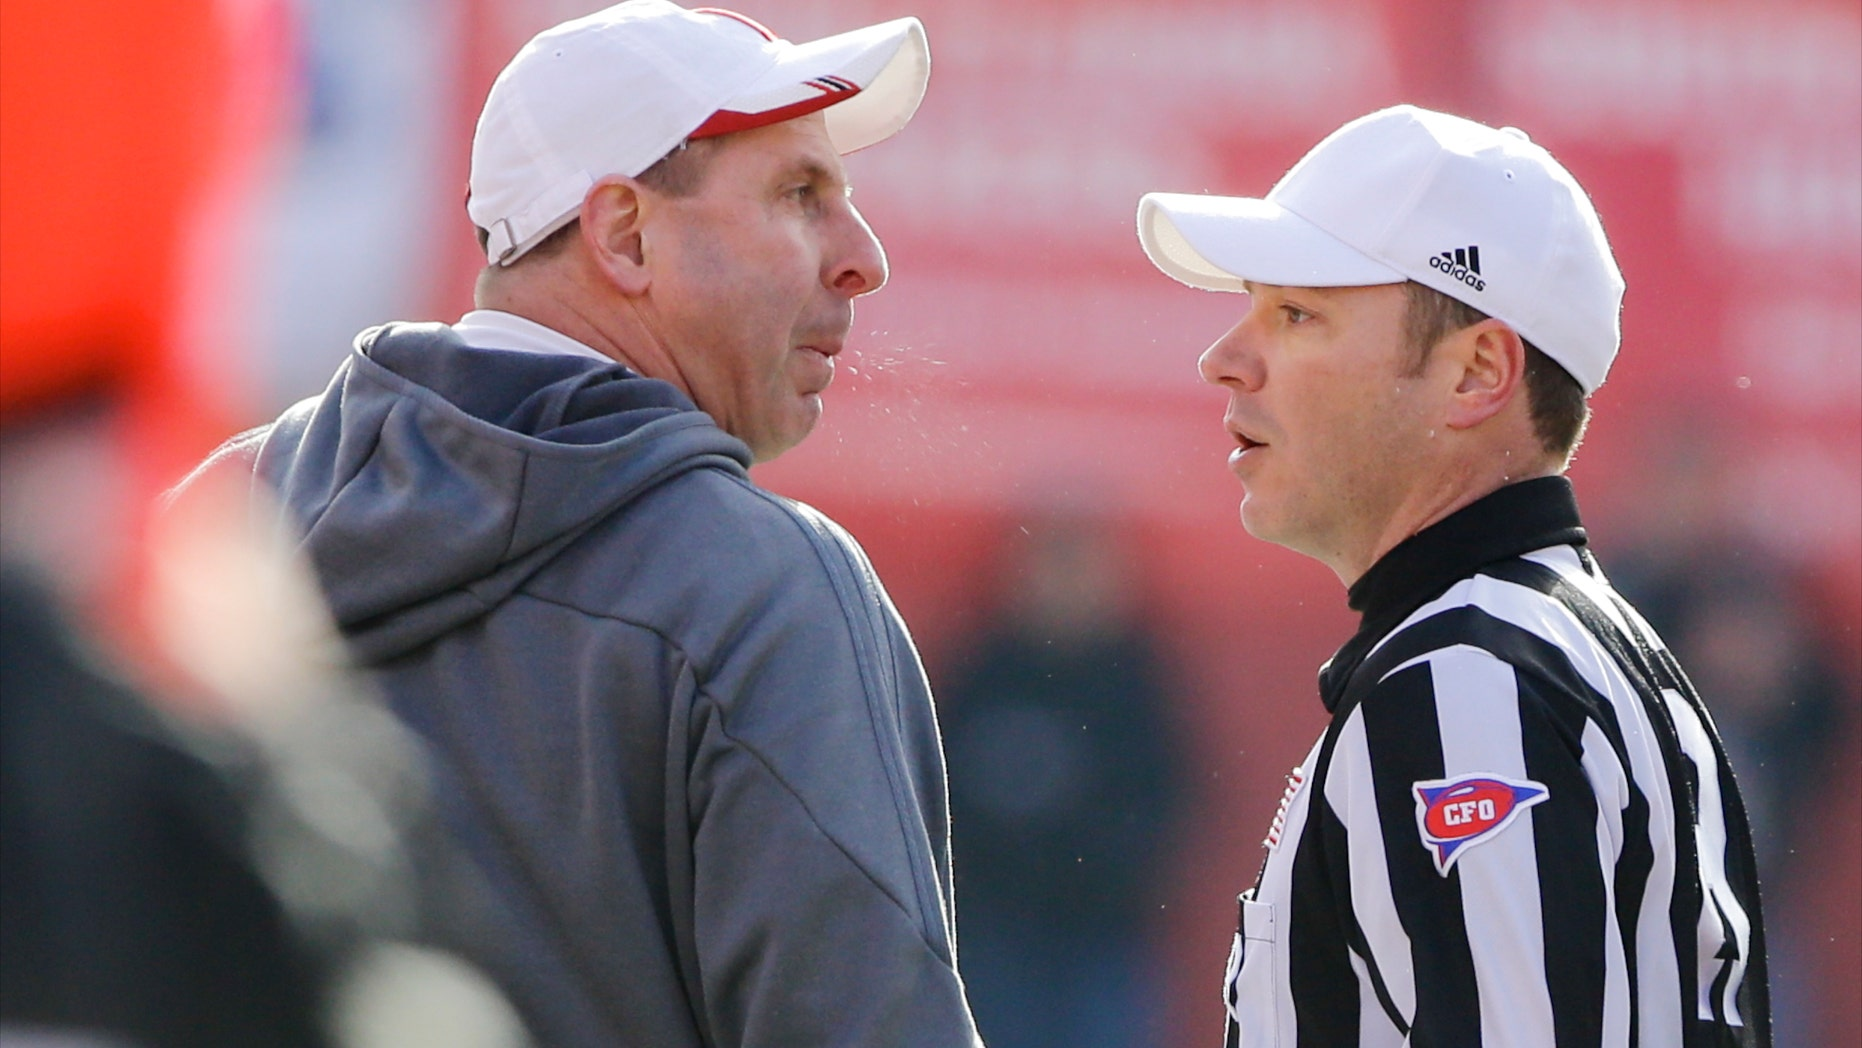 Nebraska head coach Bo Pelini, left, protests a pass interference call with referee Alex Kemp, right, in the third quarter of an NCAA college football game against Iowa in Lincoln, Neb., Friday, Nov. 29, 2013. Iowa won 38-17. (AP Photo/Nati Harnik)